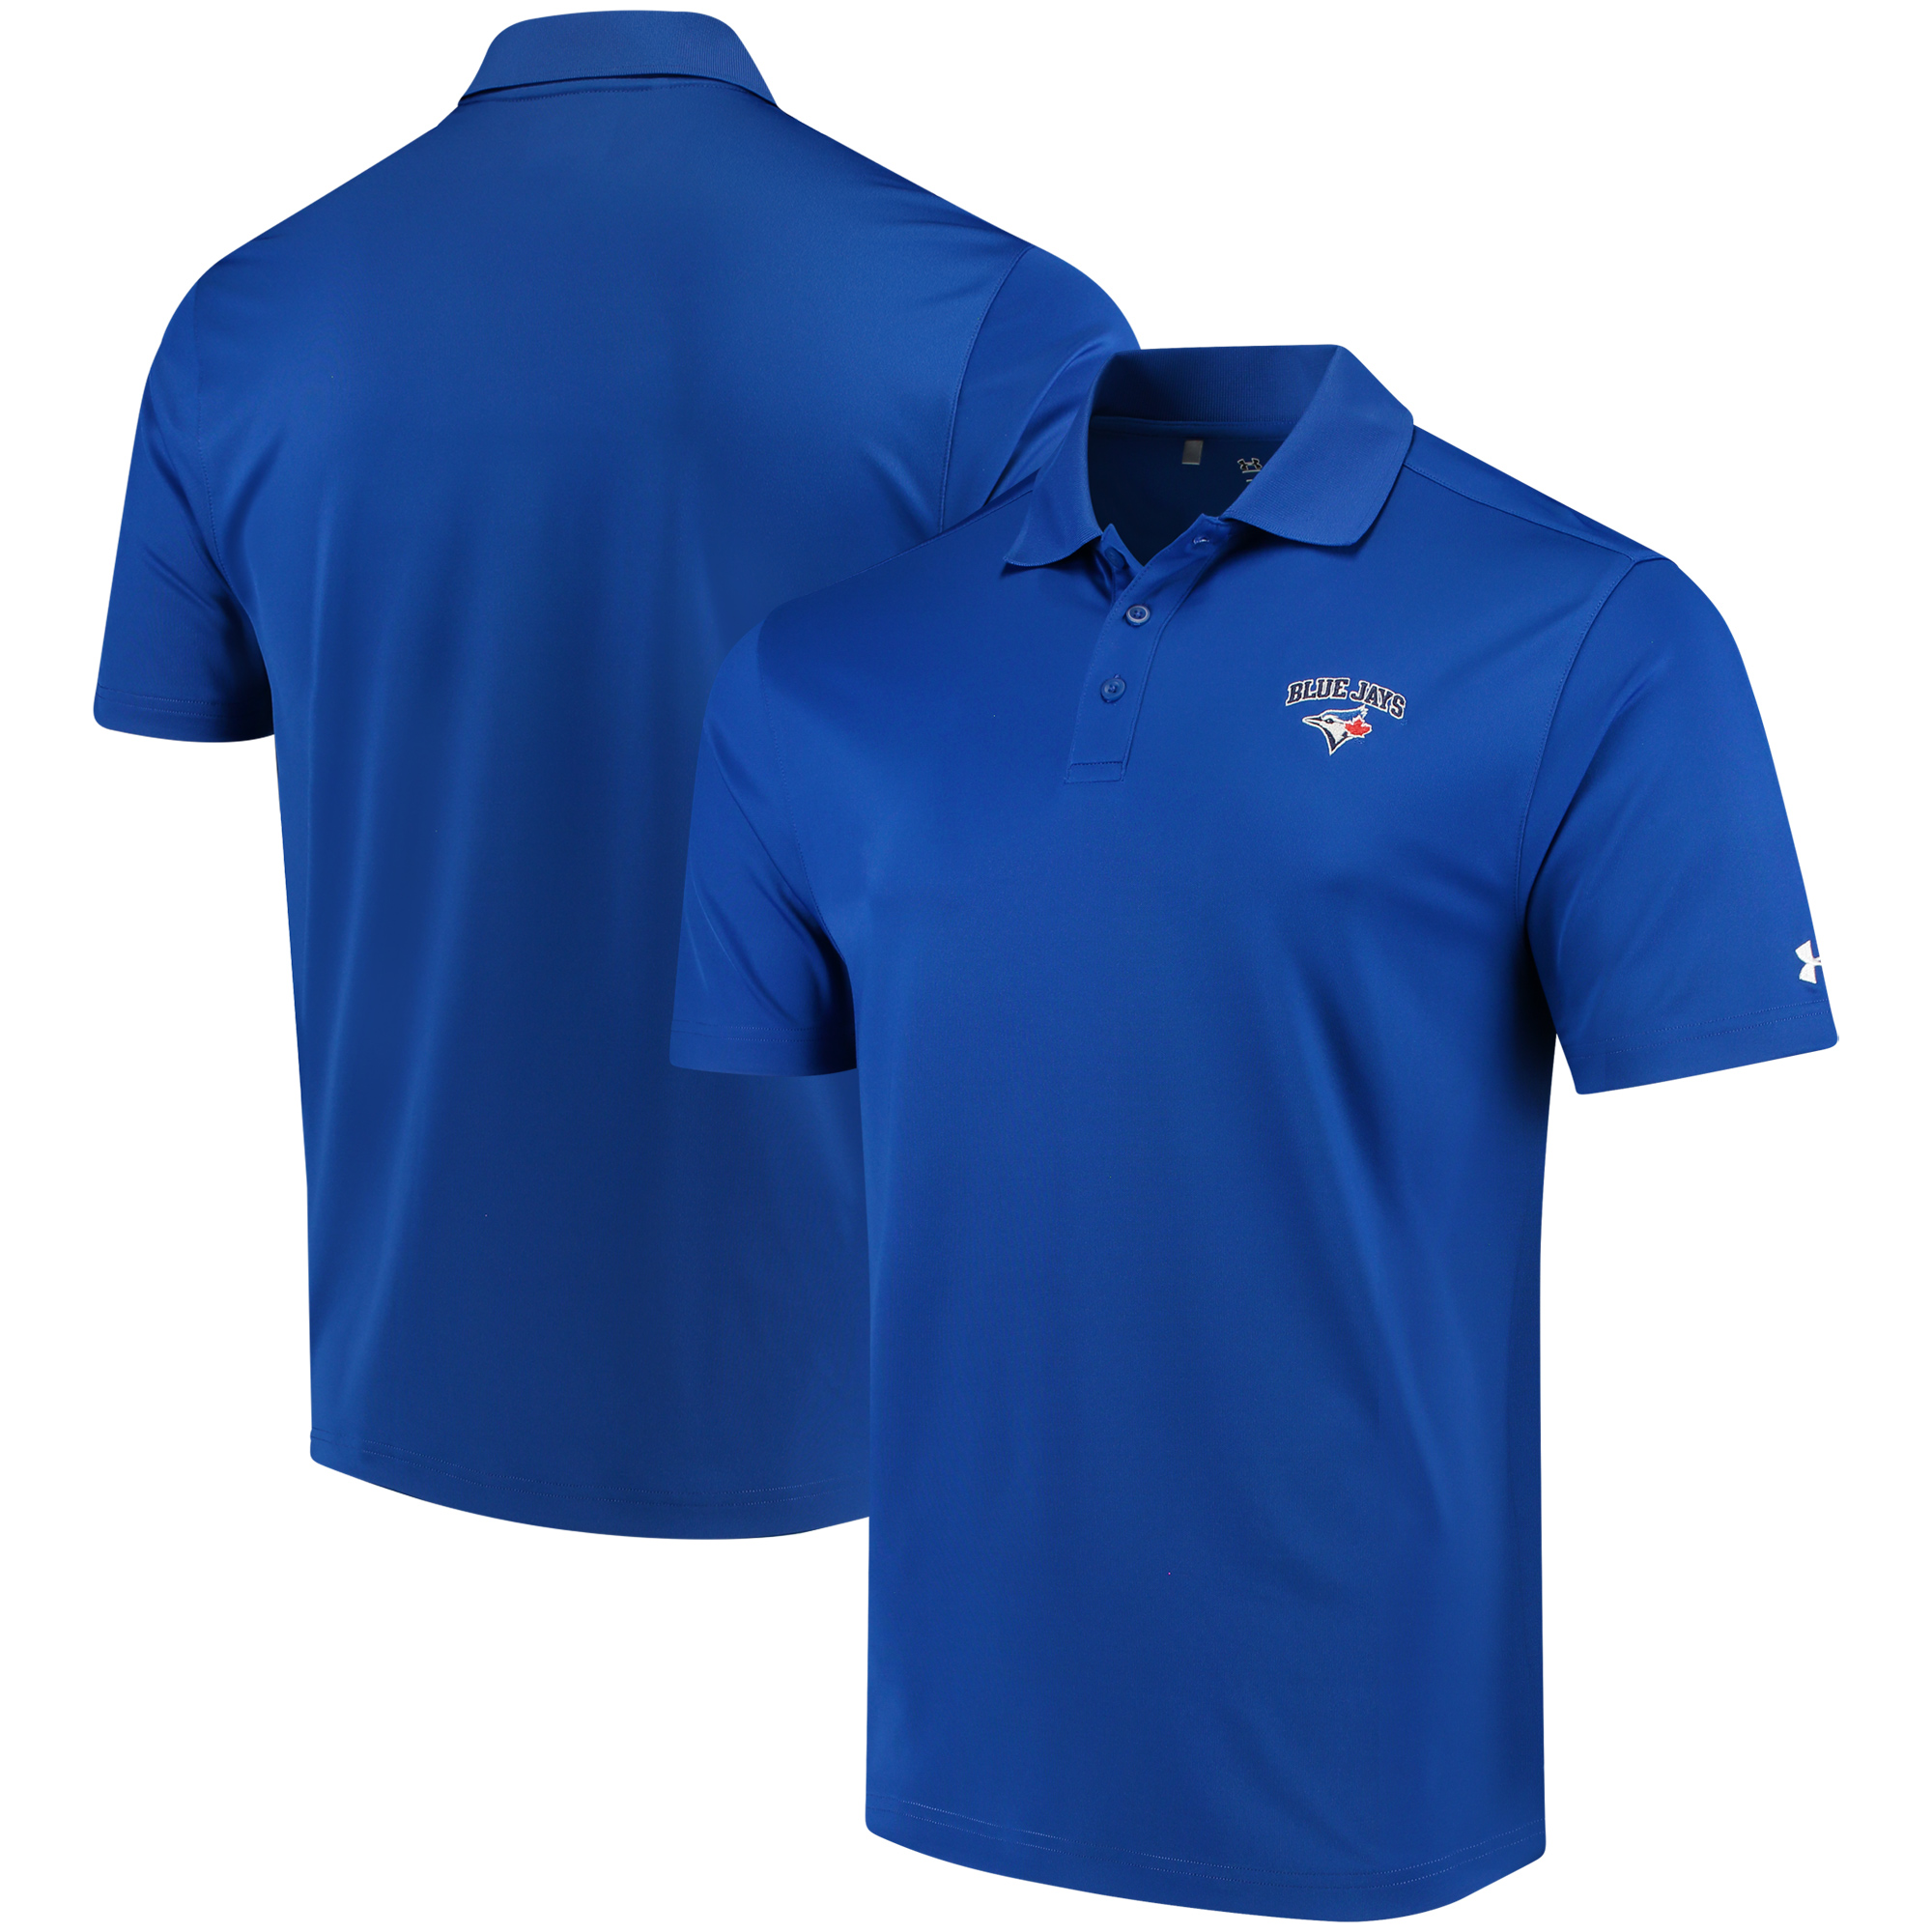 Men's Under Armour Royal Toronto Blue Jays Performance Polo